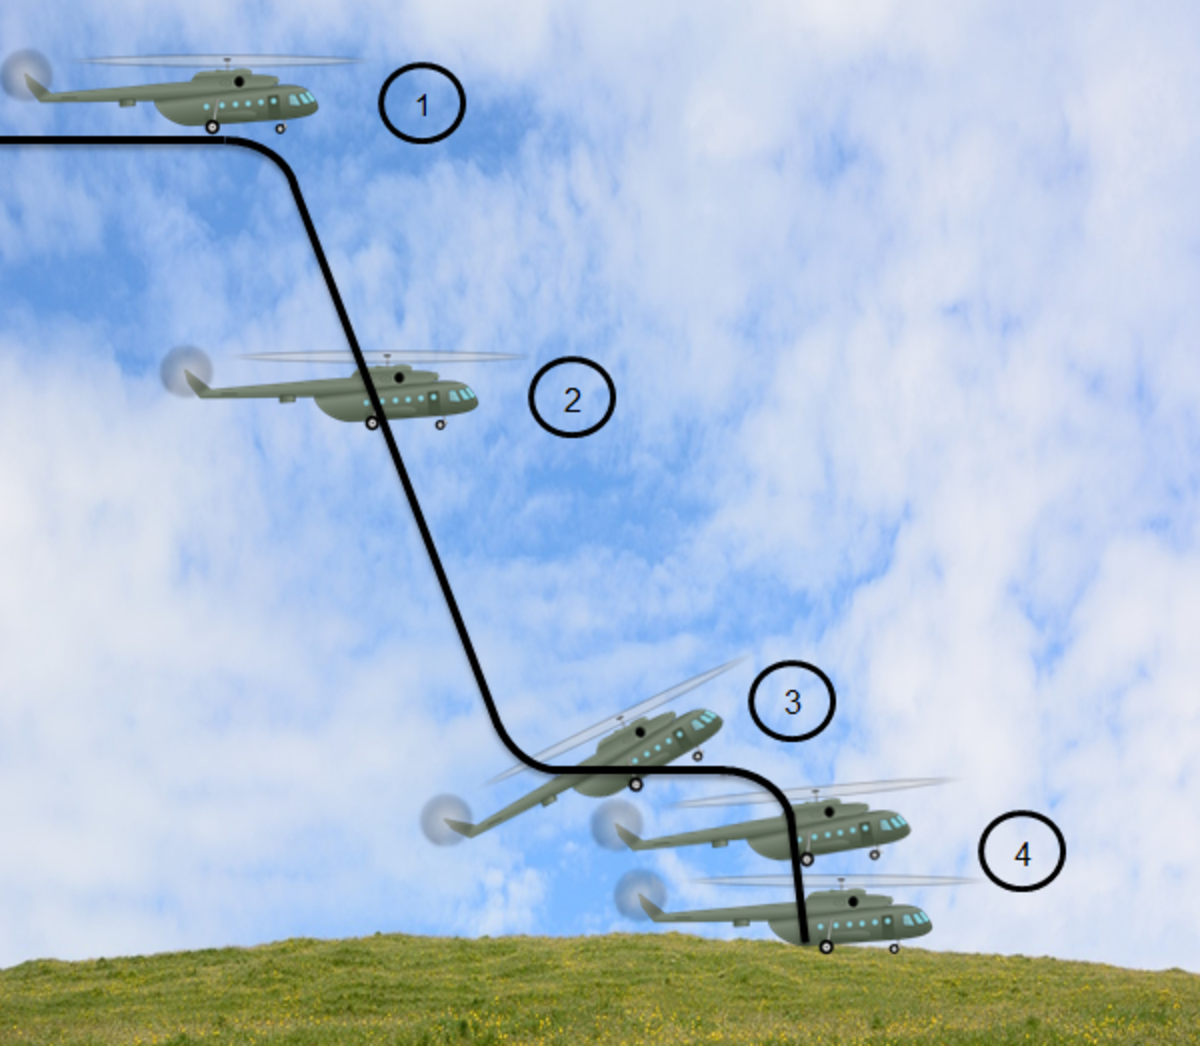 Phases of autorotation: 1. entry; 2. established glide; 3. flare; 4. level-off and landing